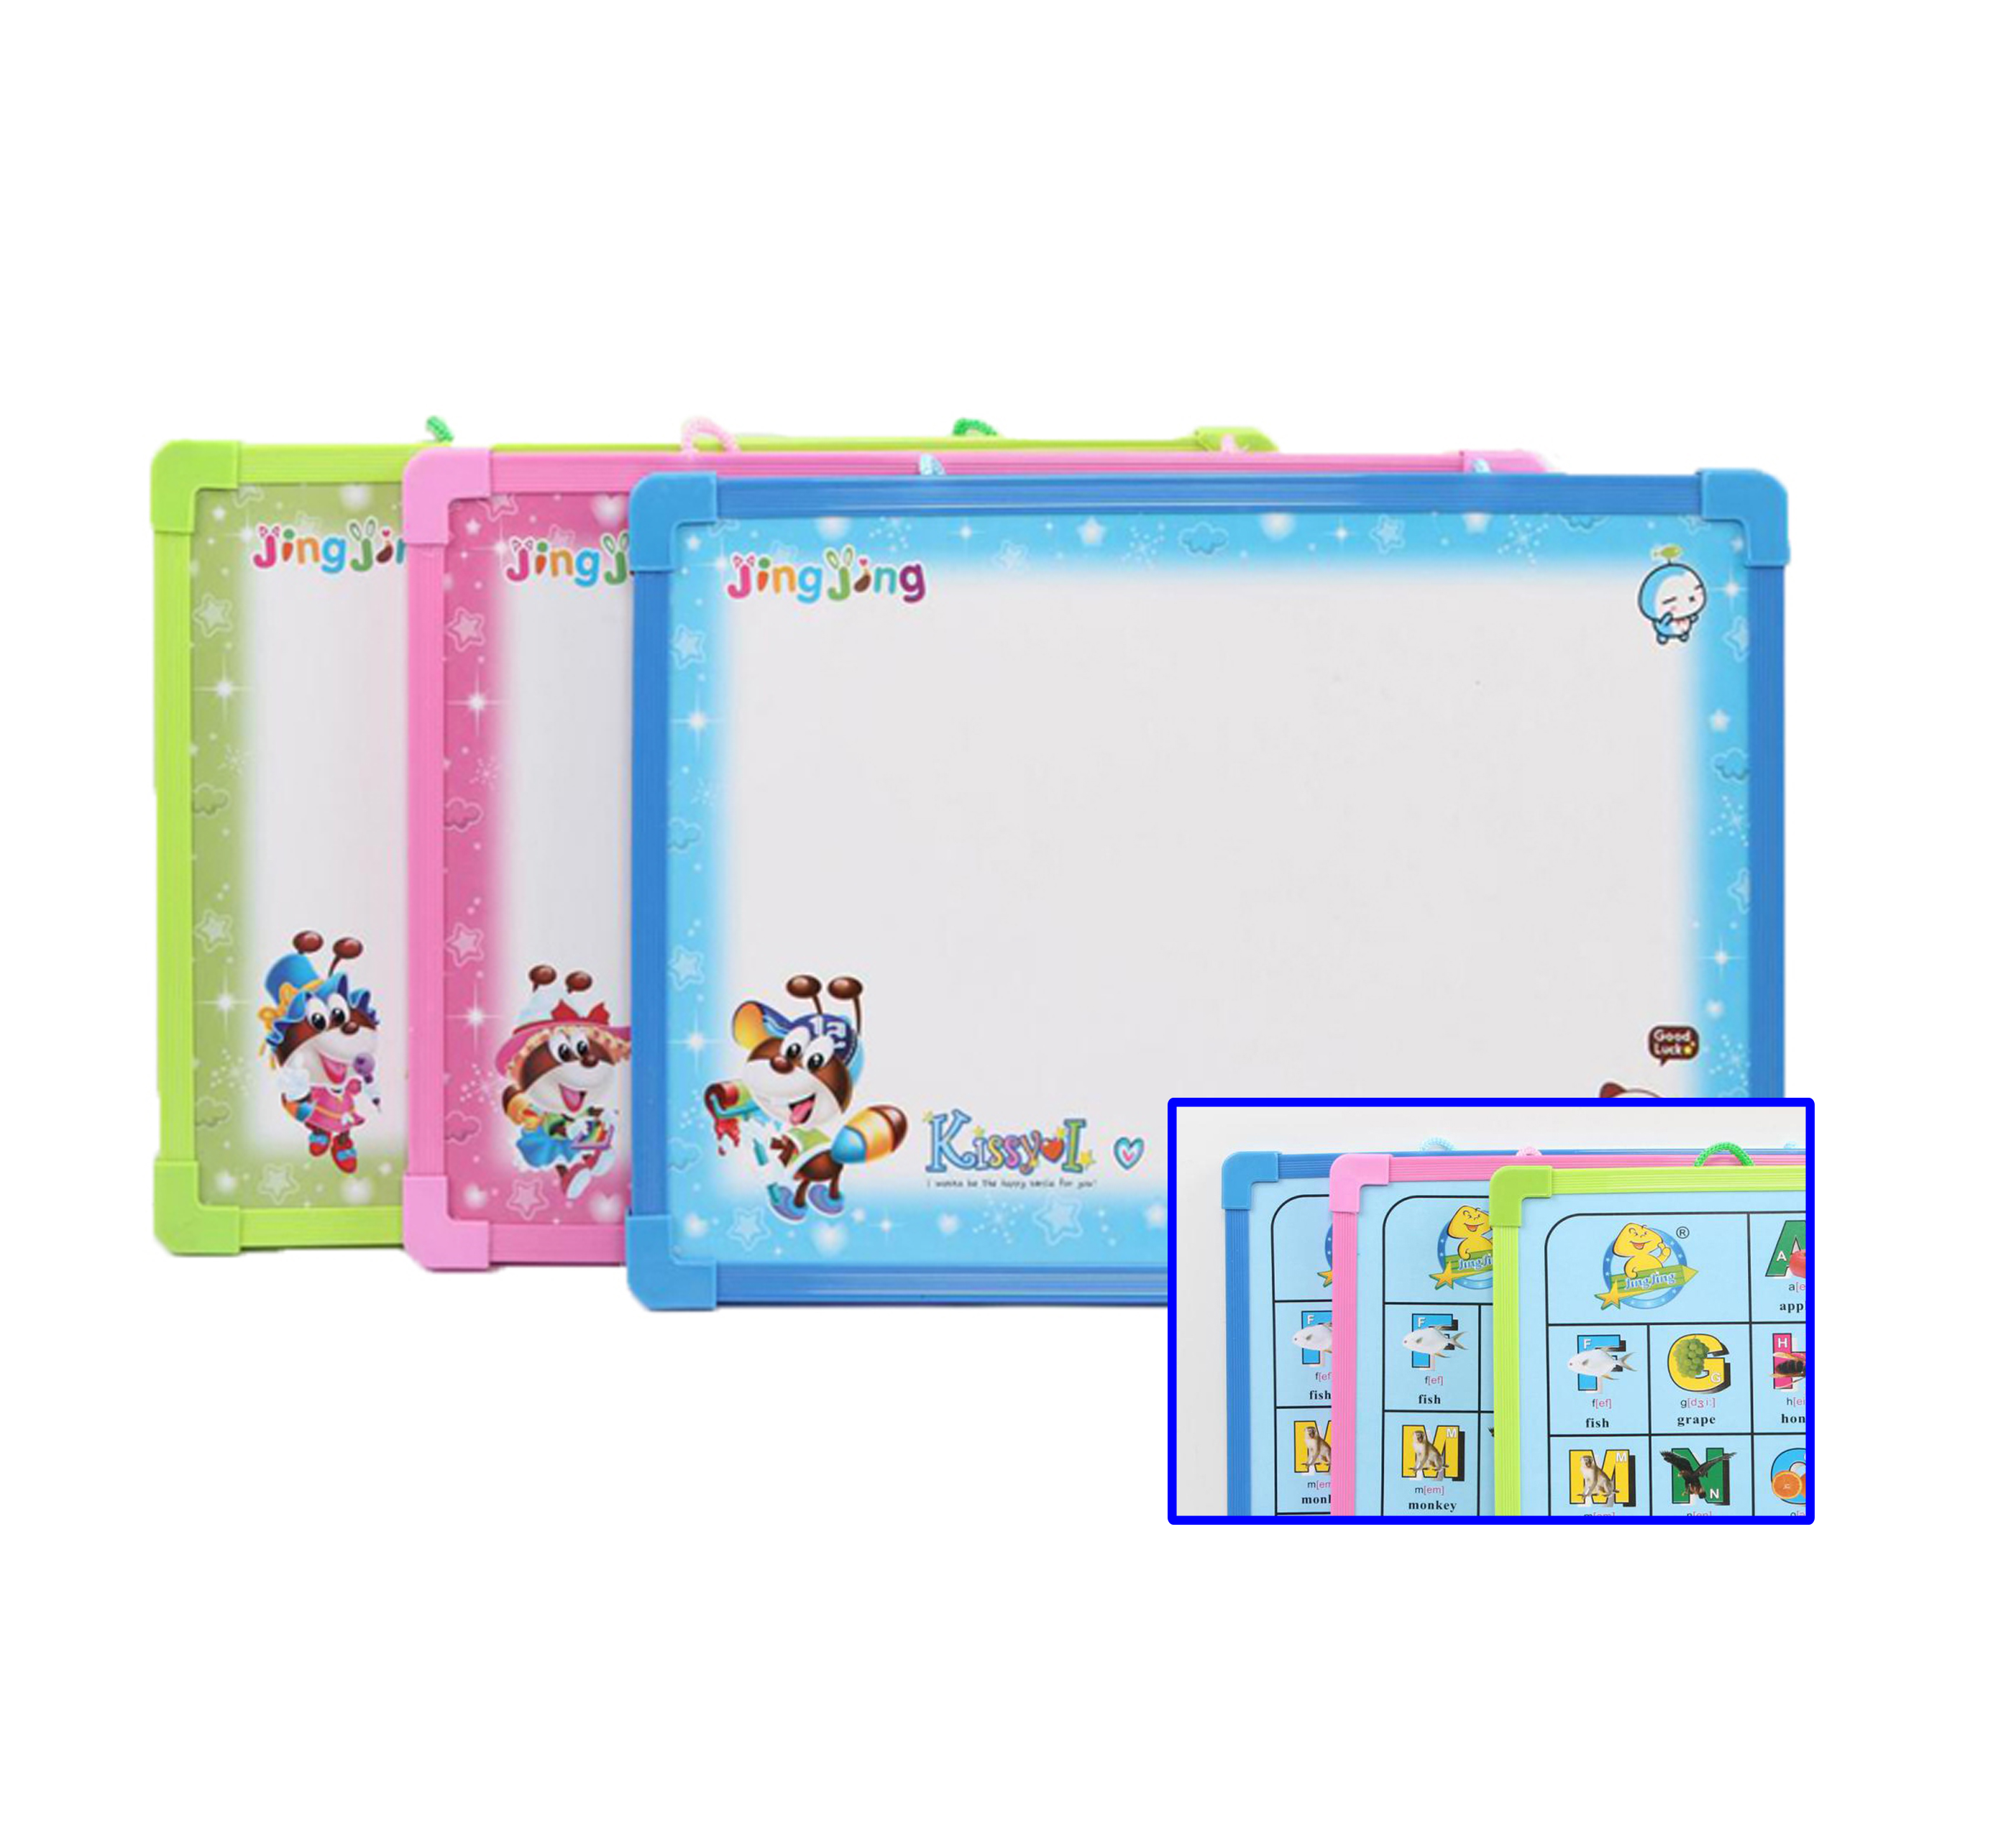 Double Sided Small Wall Mount Magnetic Hanging Dry Erase Teaching White Board for School - Yola WhiteBoard | szyola.net